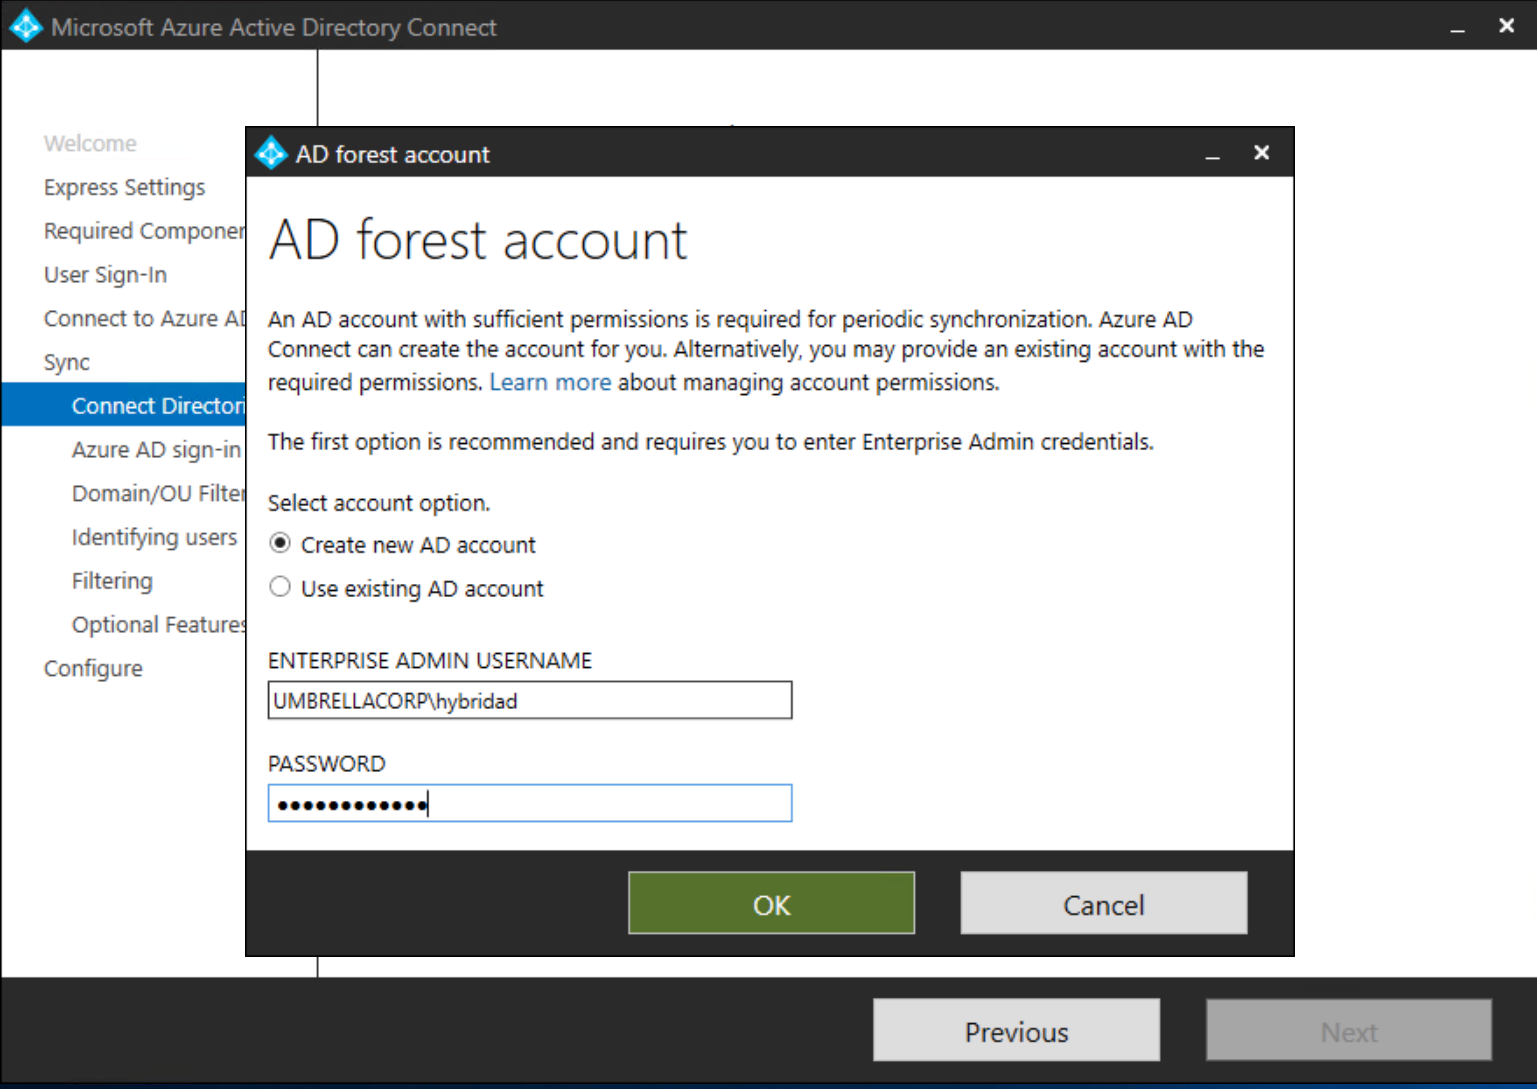 Configuring Pass-Through Authentication in Azure Active